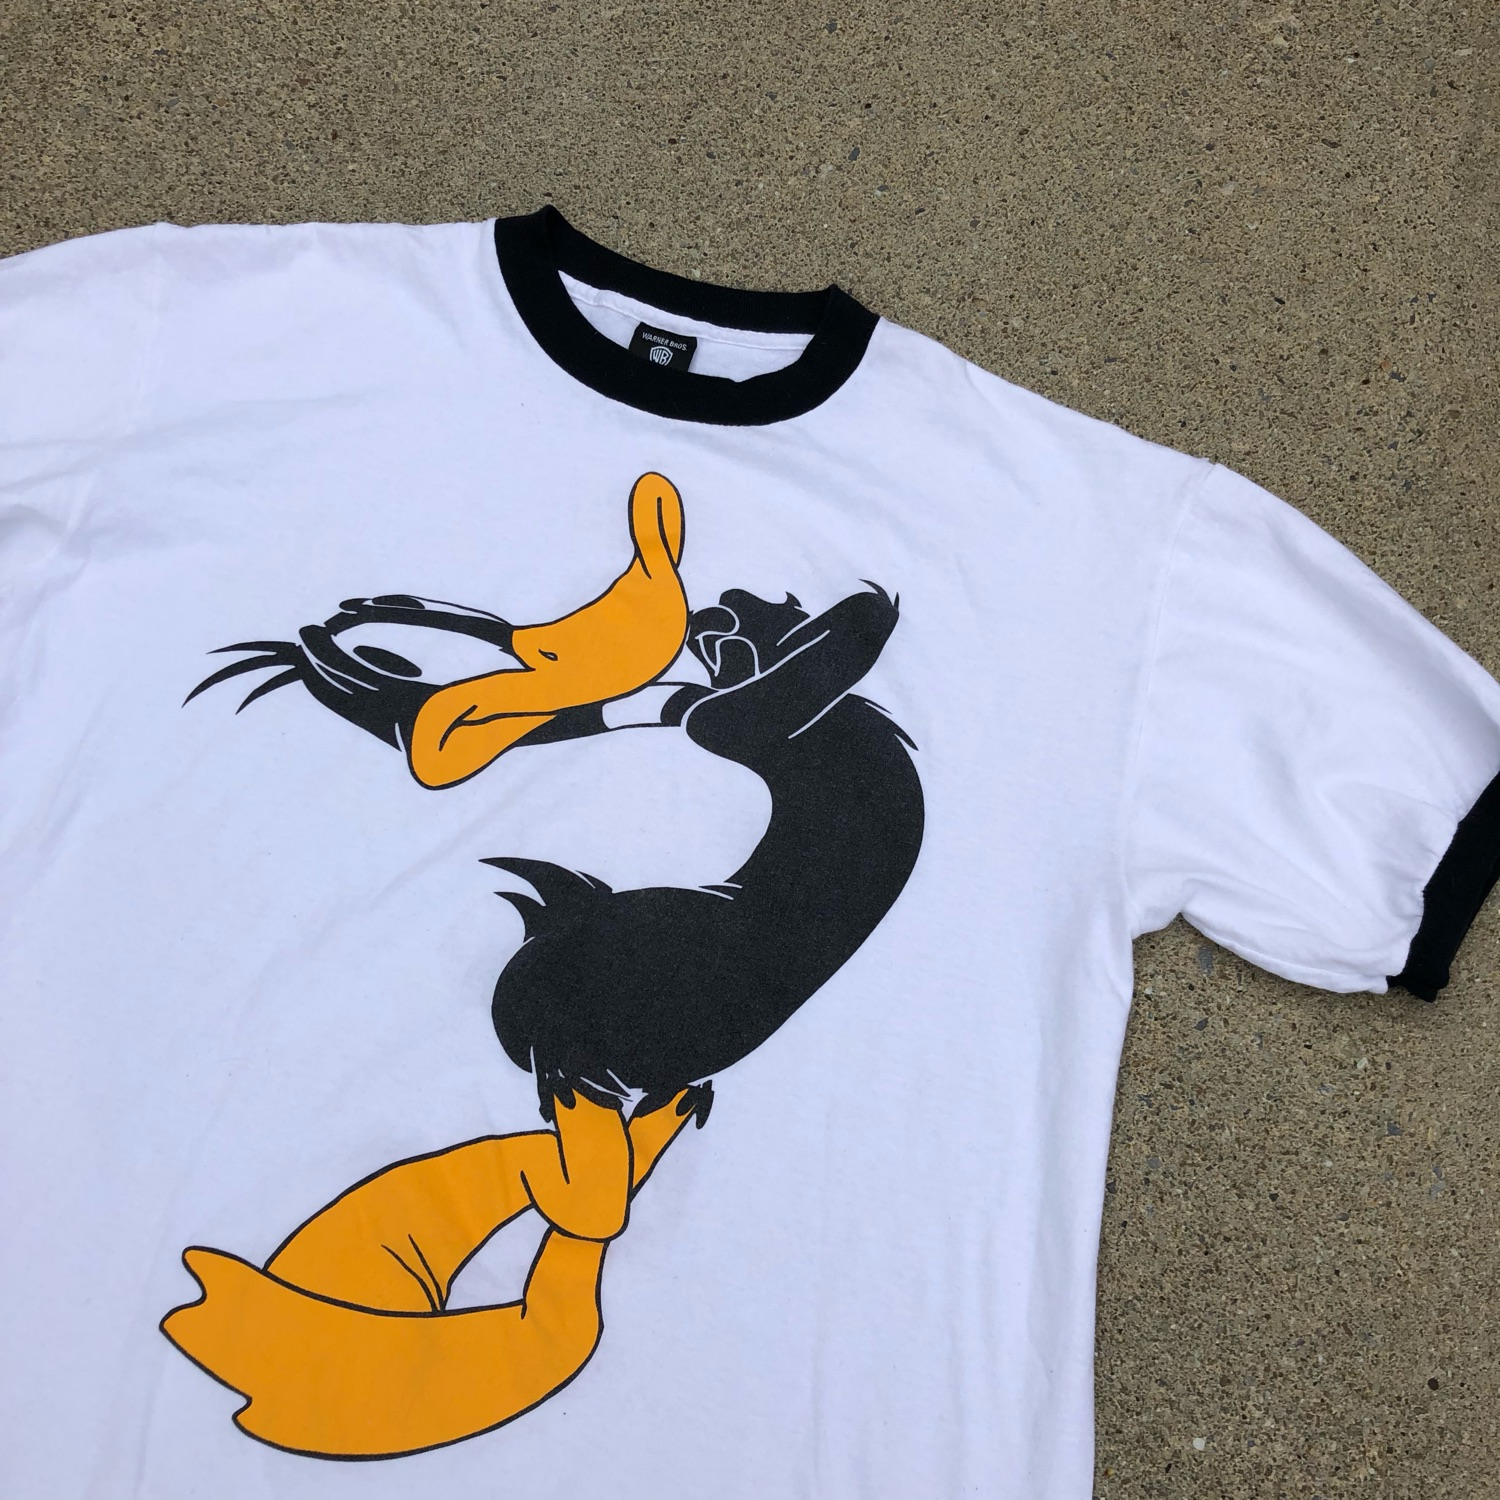 899cb72c8f6a Vintage 90S Daffy Duck Ringer Tee